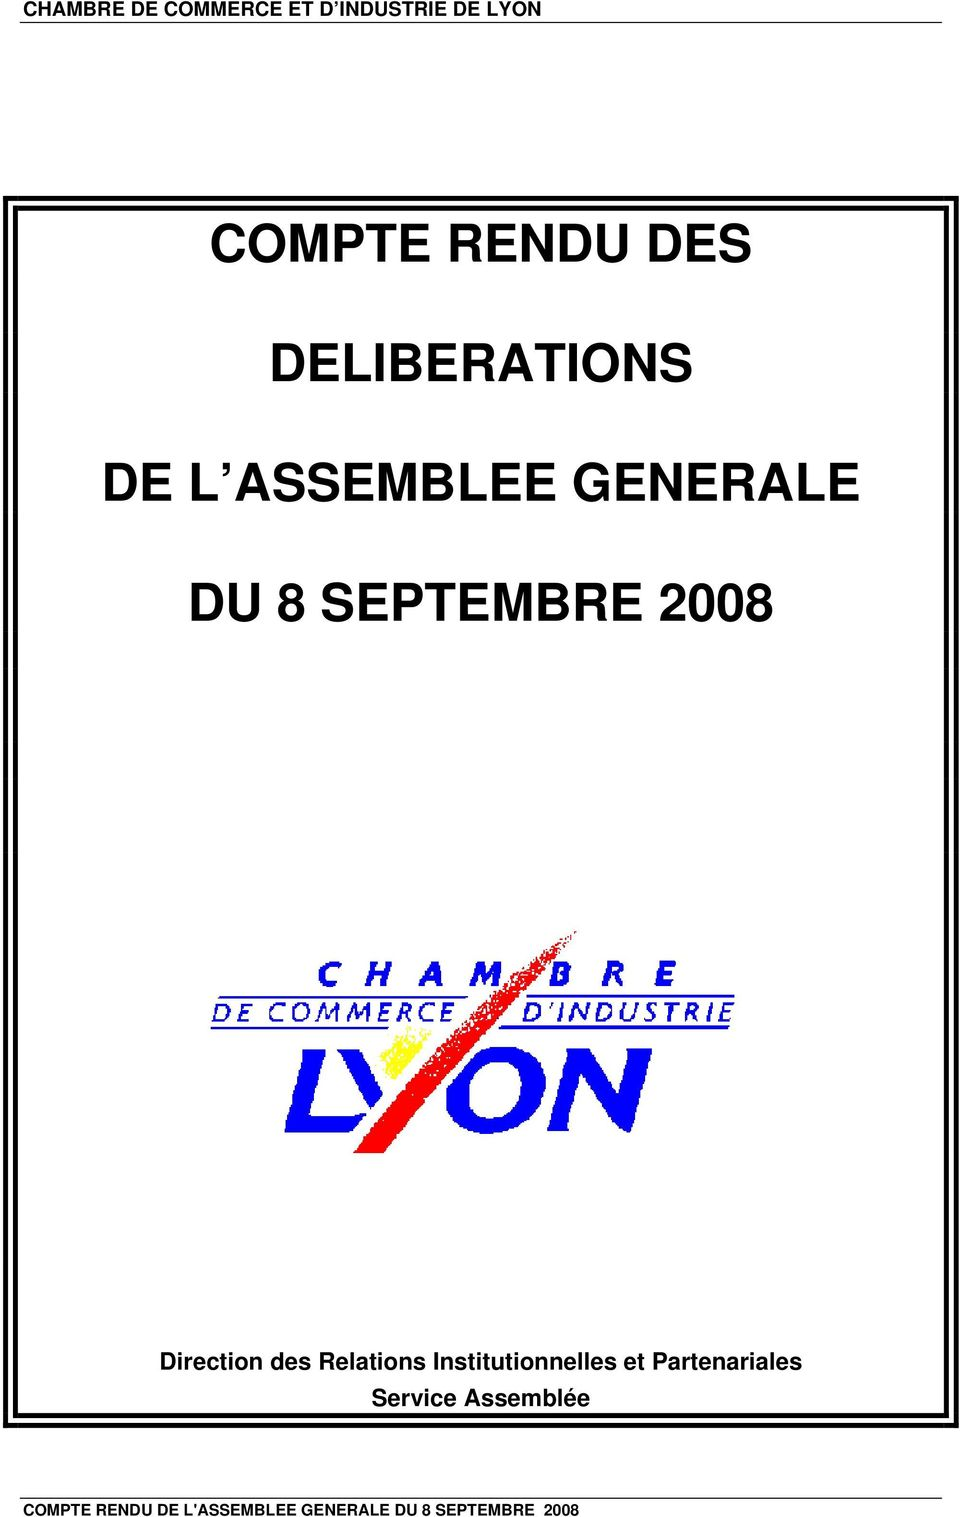 Direction des Relations Institutionnelles et Partenariales